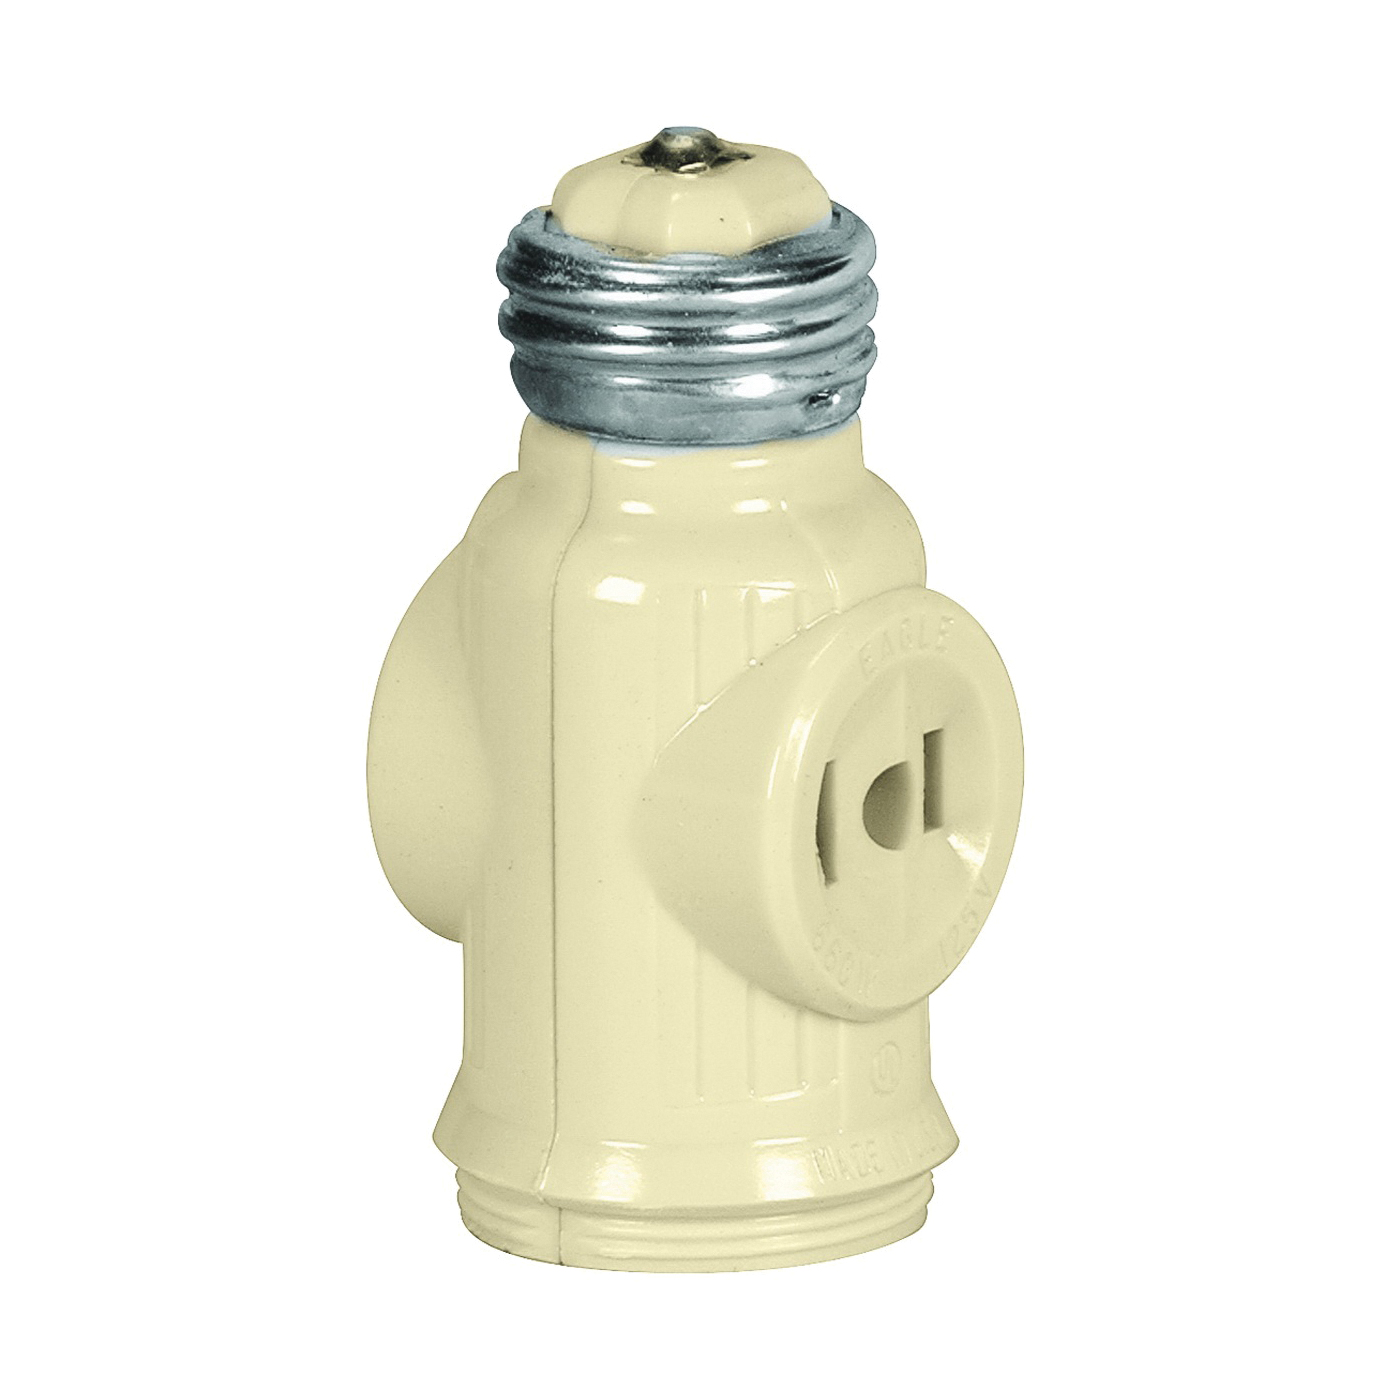 Picture of Eaton Wiring Devices 715V-BOX Socket Adapter, 660 W, 2-Outlet, Thermoplastic, Ivory